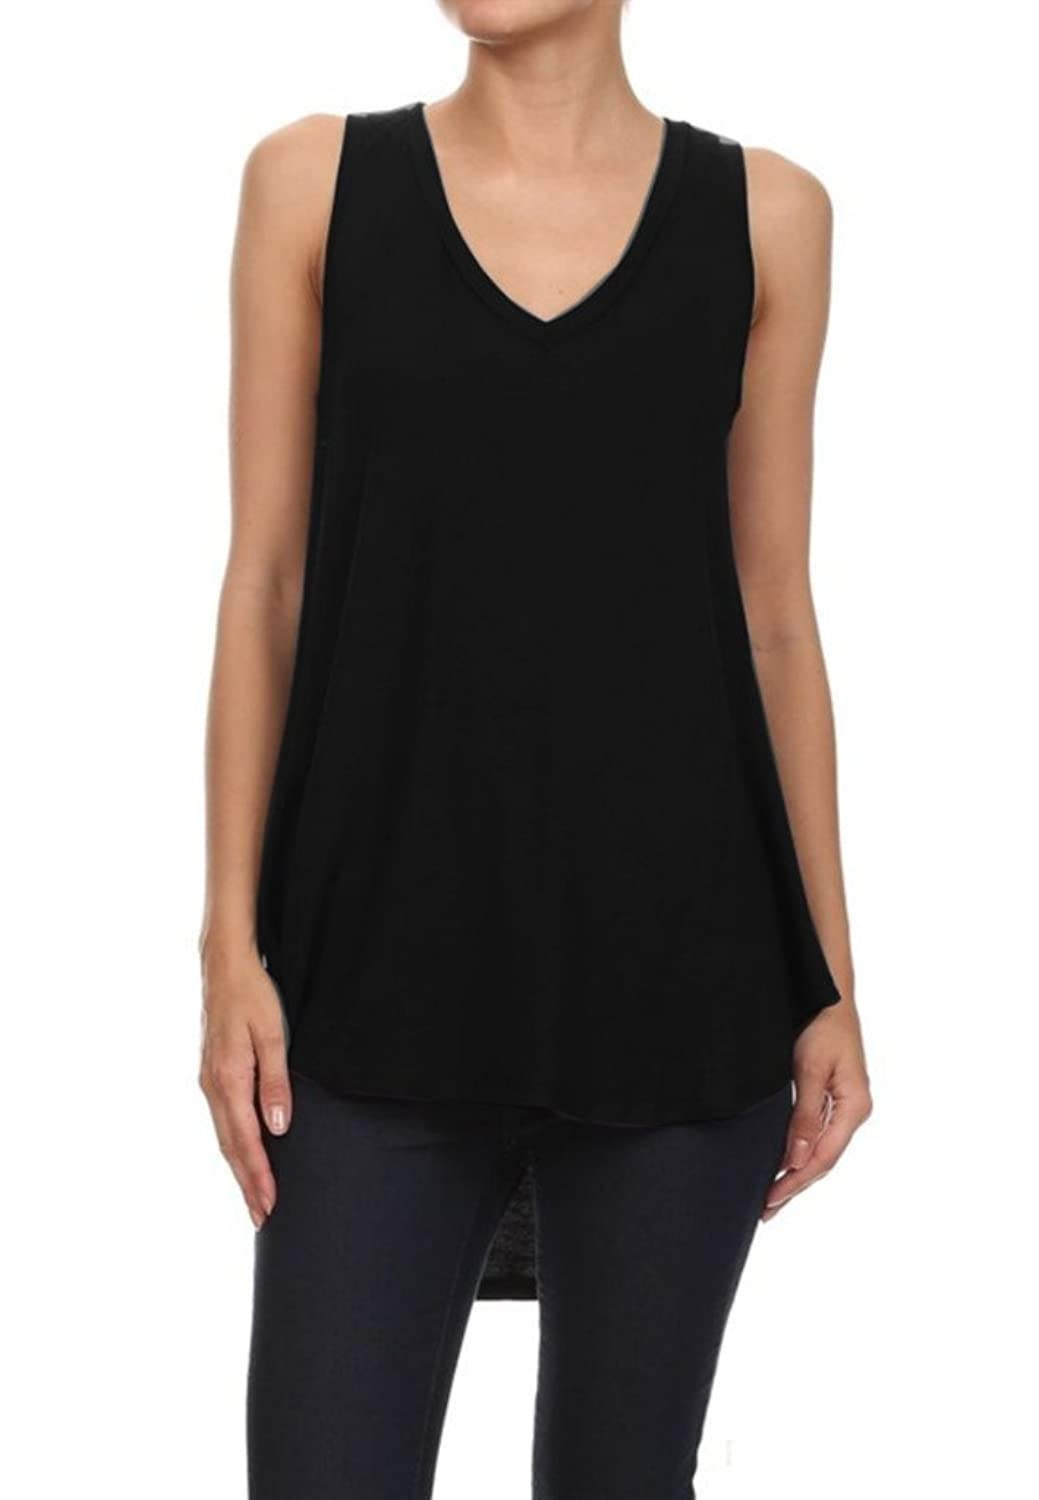 Freeloader Women's Sleeveless Tunic Tank Top